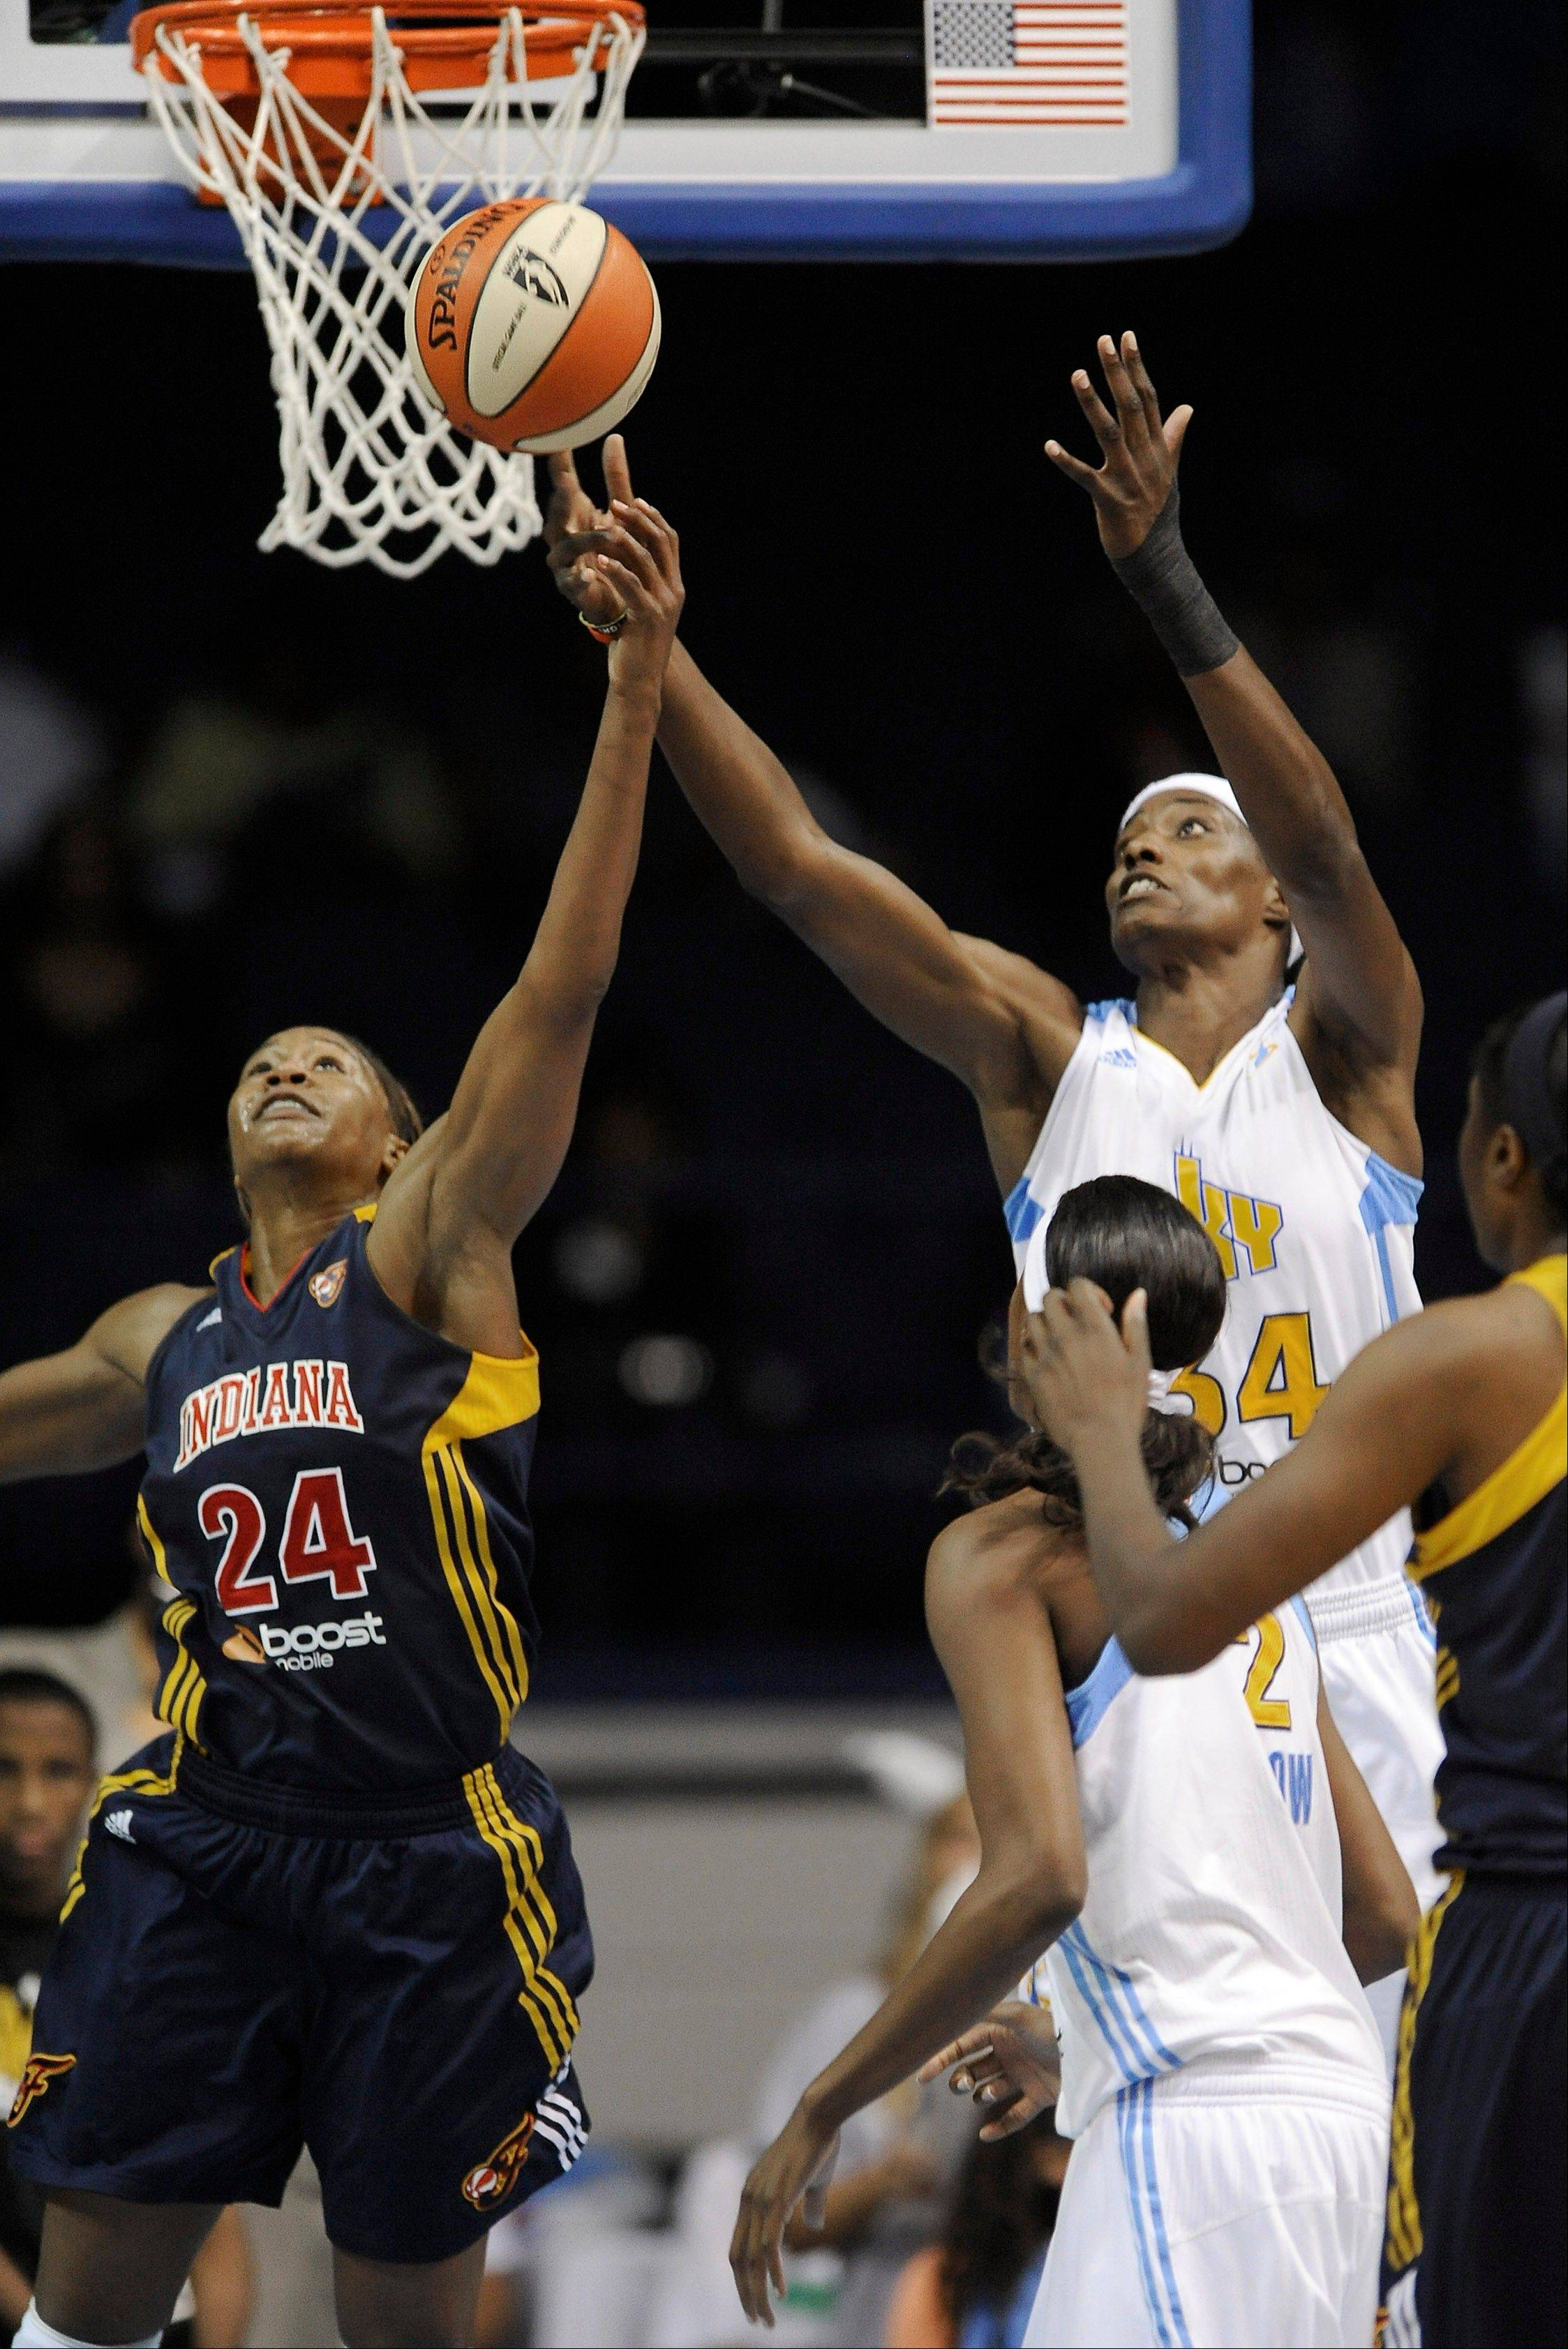 Tamika Catchings left, shown battling the Sky's Sylvia Fowles for a rebound in WNBA action last season, did not play overseas this winter in order to allow a foot injury to heal.